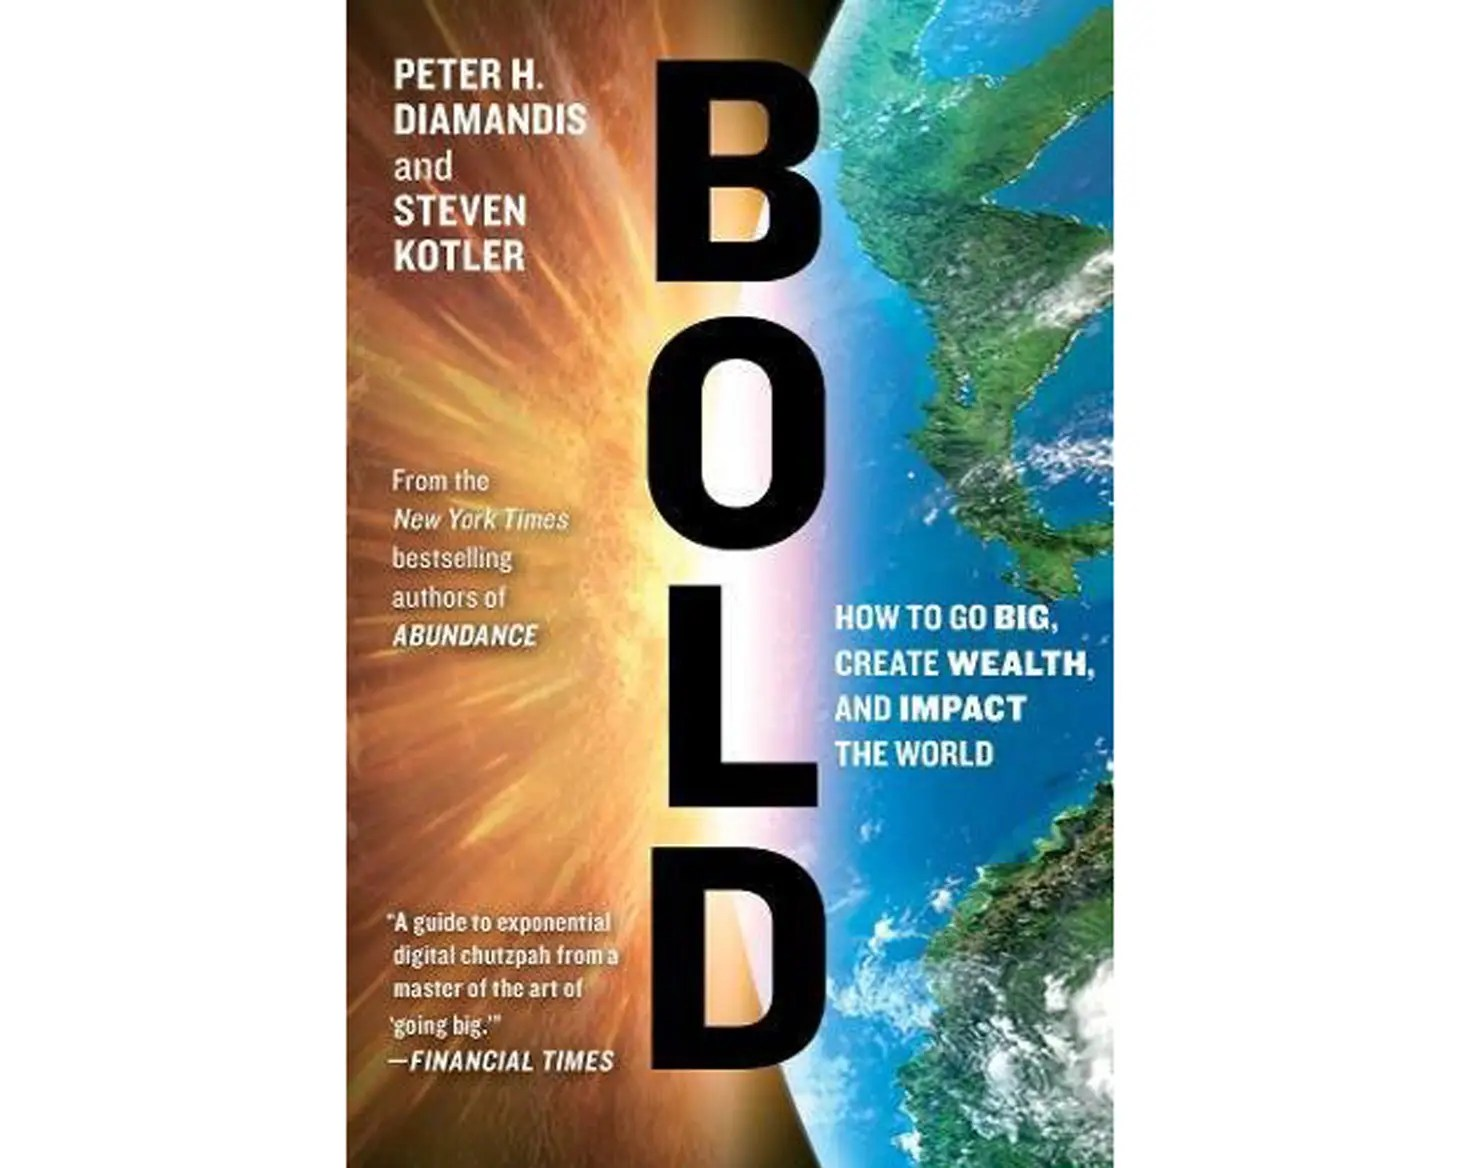 """Bold: How to Go Big, Create Wealth and Impact the World"" by Peter H. Diamandis, Steven Kotler"